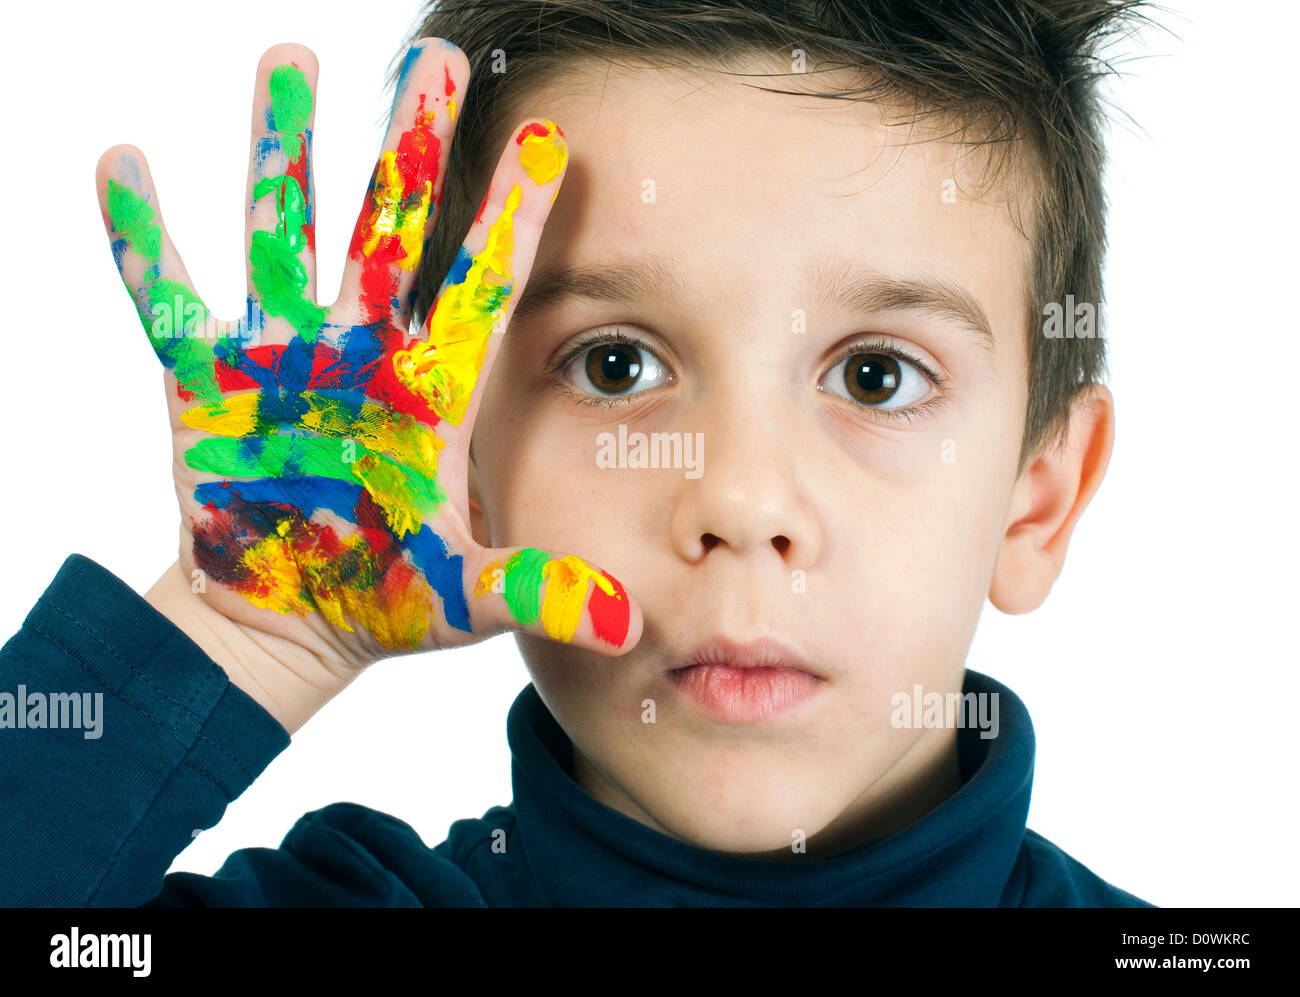 Boy hand painted with colorful paint. White islated - Stock Image